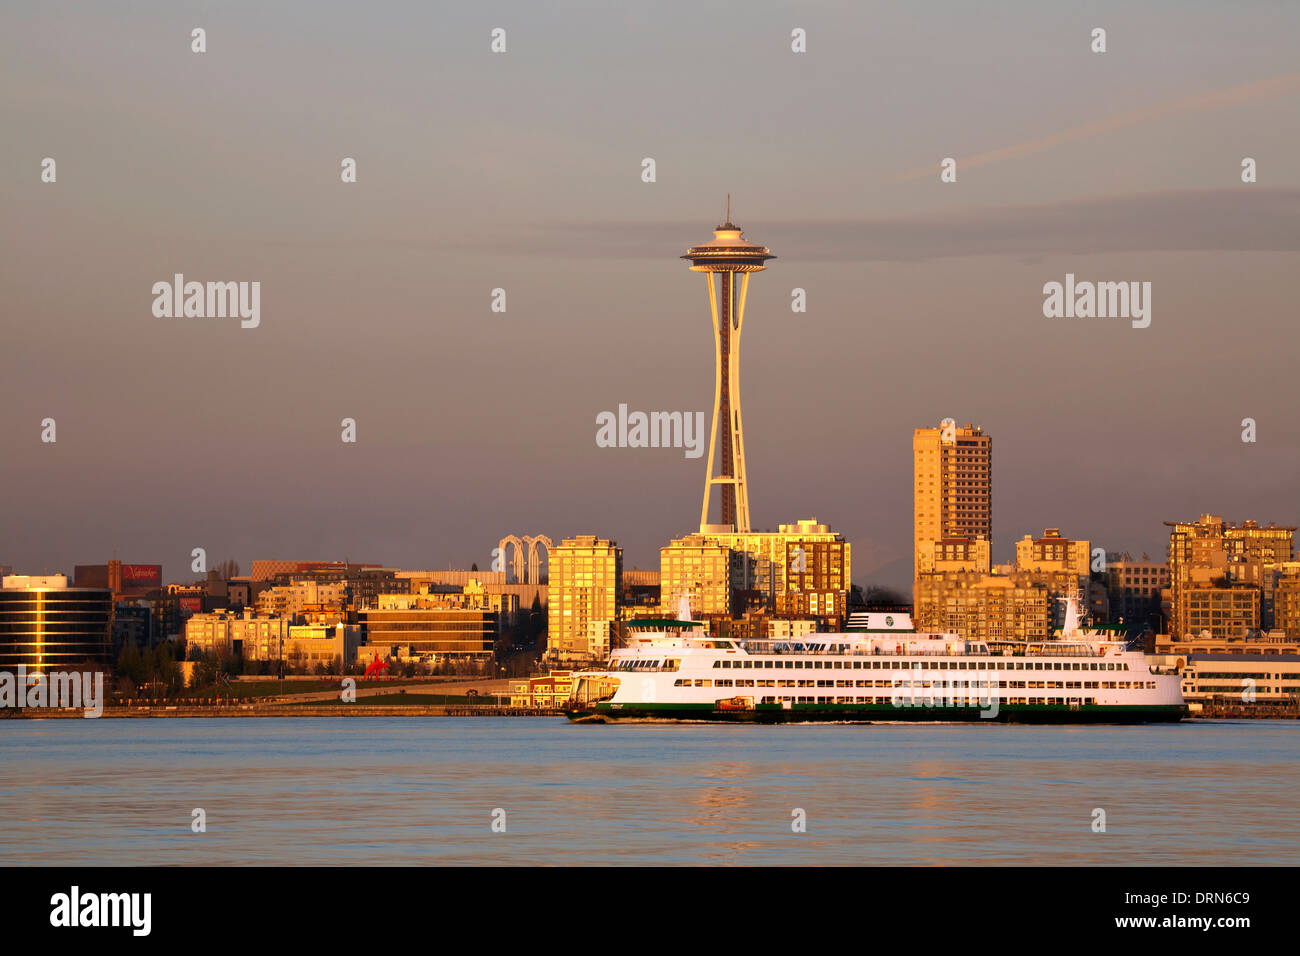 WASHINGTON - The Space Needle and a Cross-Sound ferry boat in Elliott Bay at sunset from West Seattle. Stock Photo